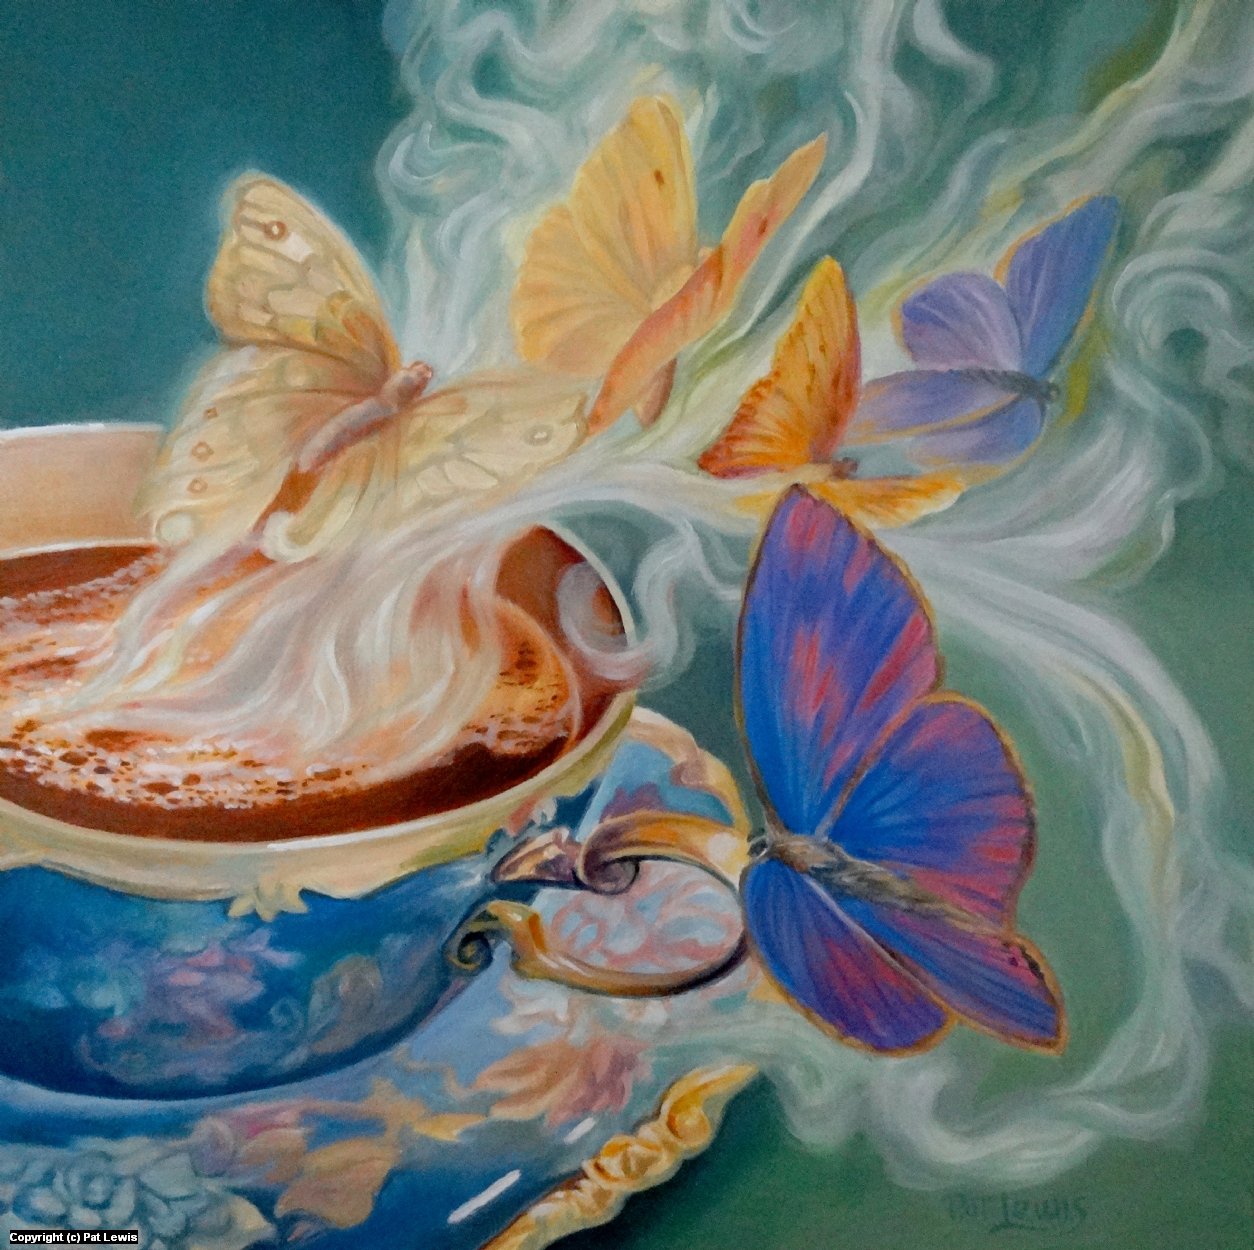 Butterflies are tea Artwork by Pat morrissey-Lewis